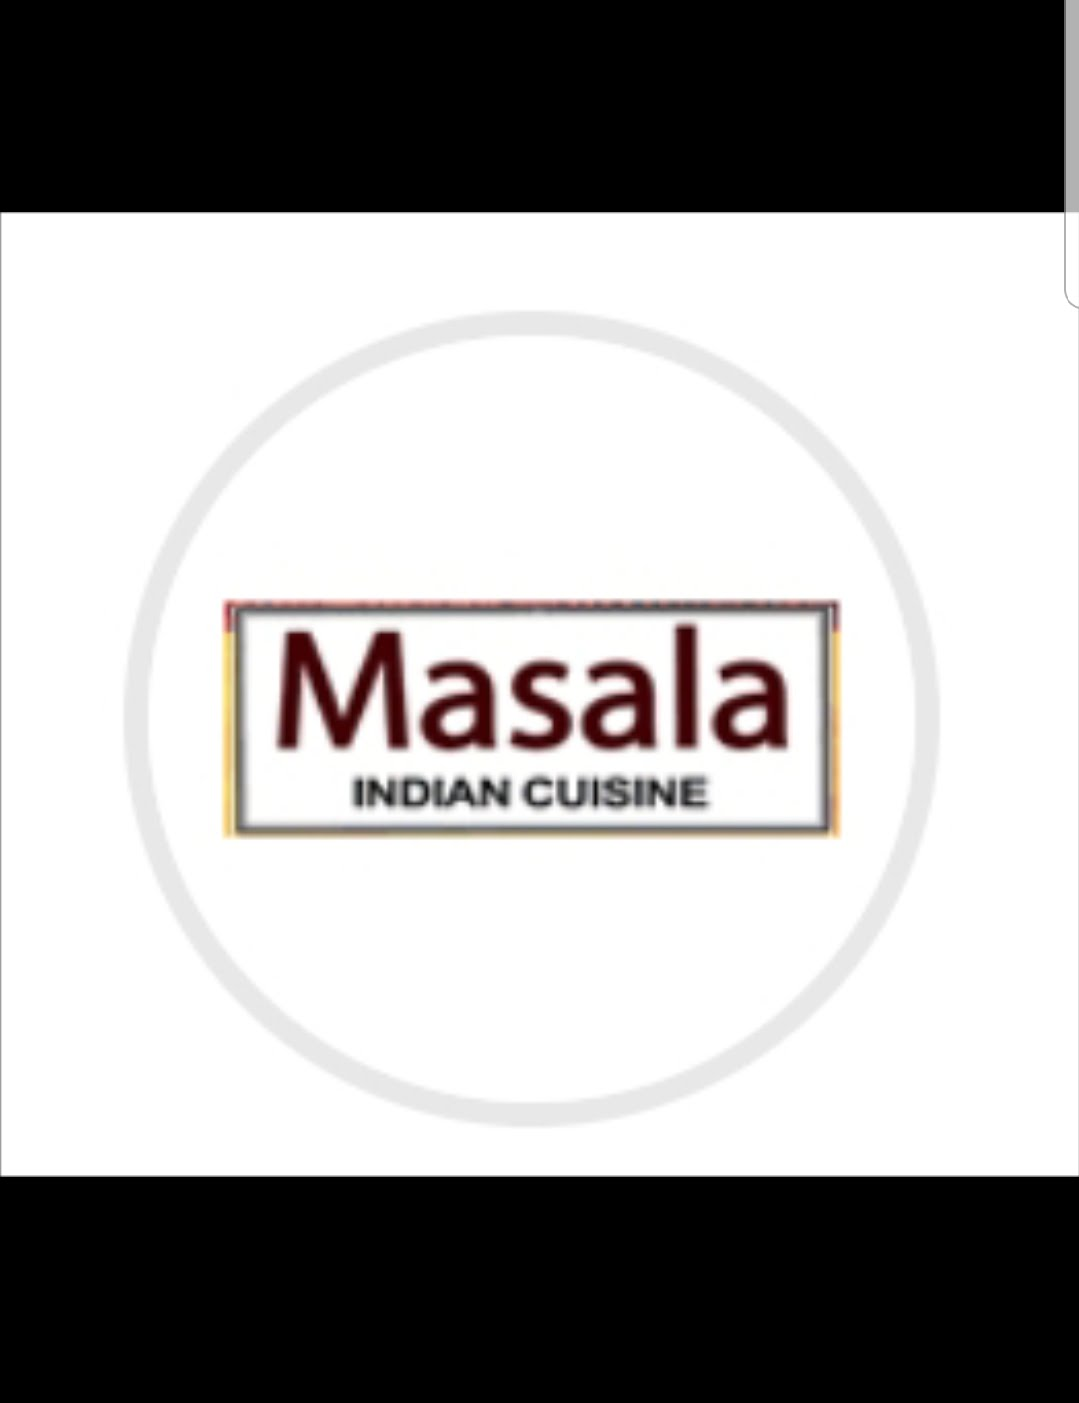 https://eatstreet.com/iowacity-ia/restaurants/masala-iowa-city